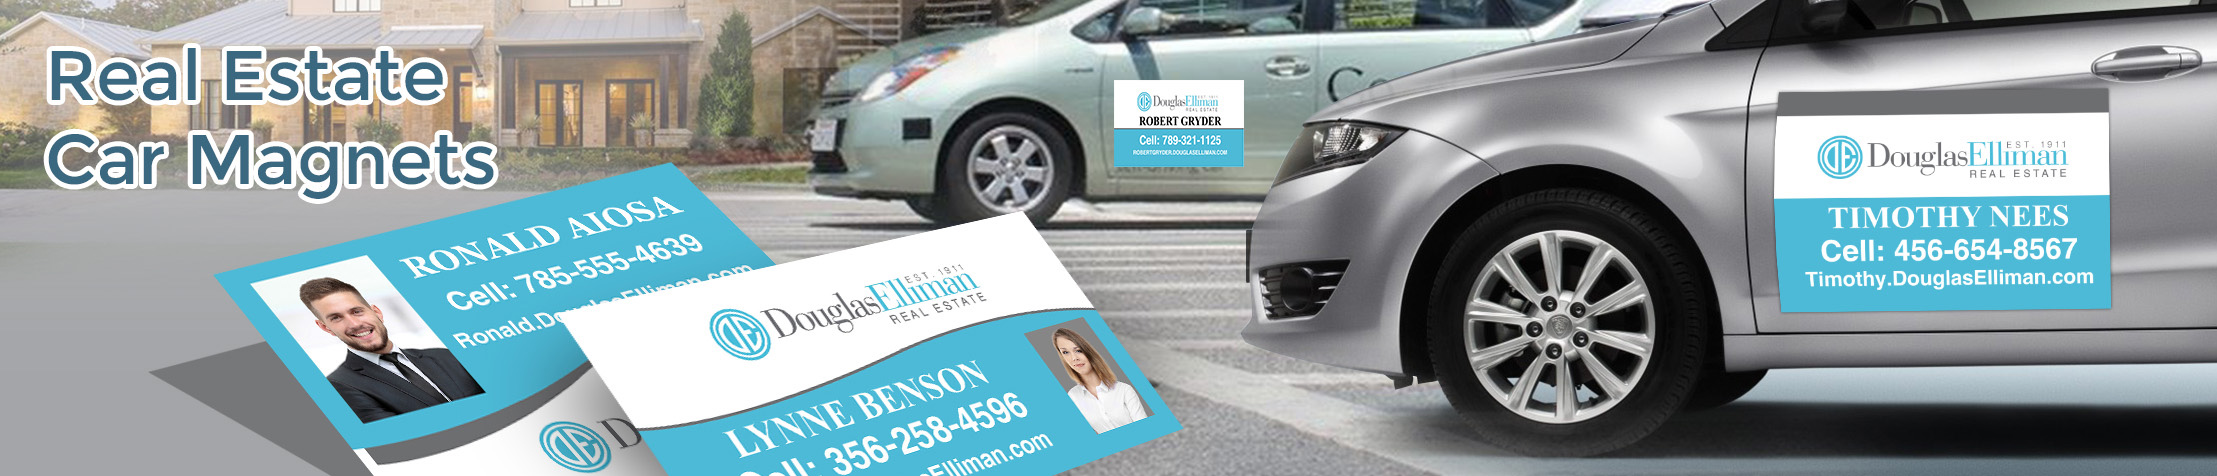 Douglas Elliman Real Estate Car Magnets - Douglas Elliman Real Estate custom car magnets for realtors, with or without photo | BestPrintBuy.com